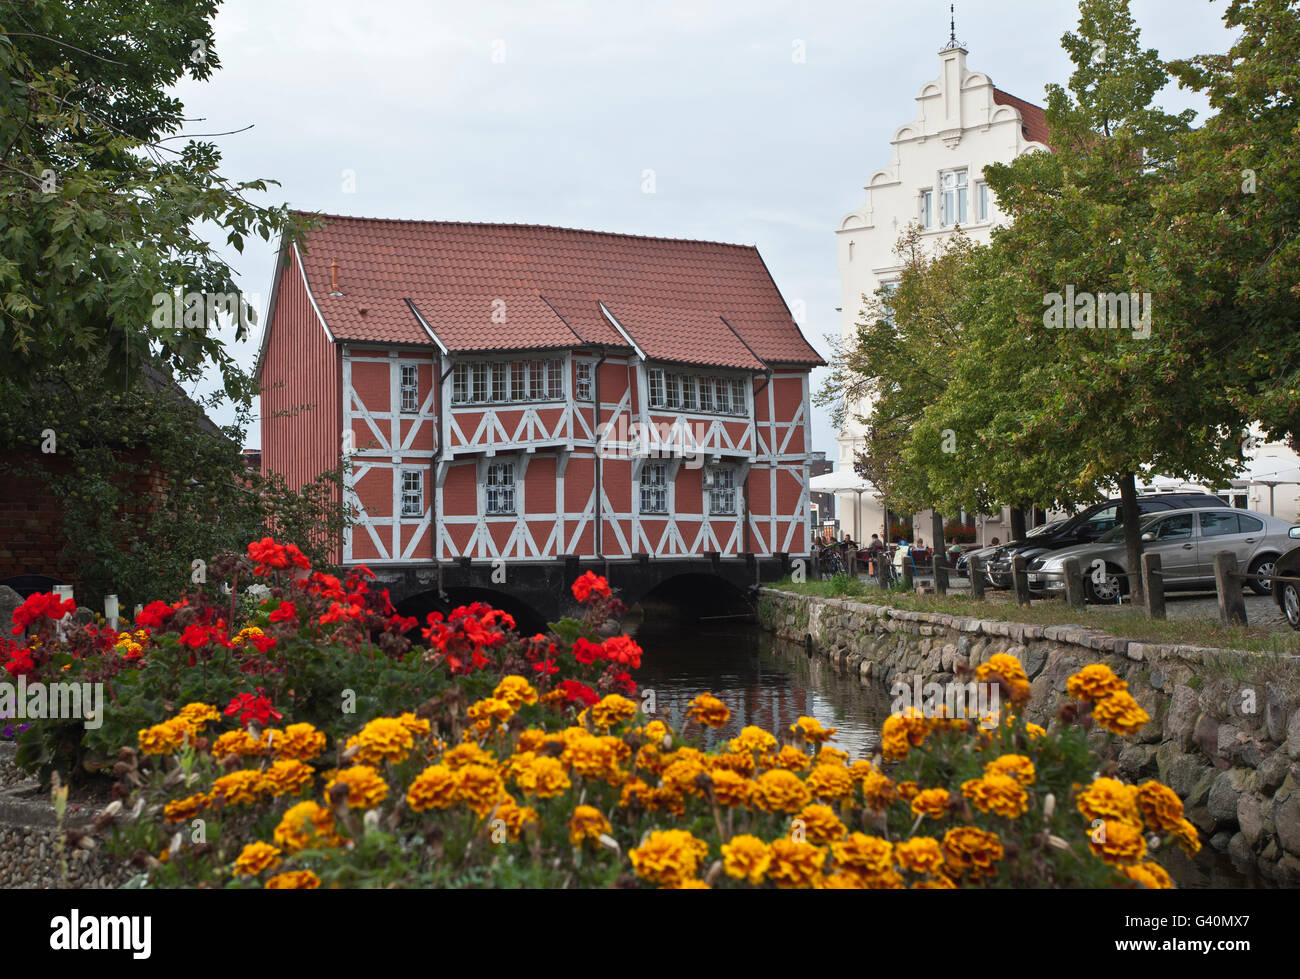 Bridge house over the Grube river, Wismar, Mecklenburg-Western Pomerania - Stock Image